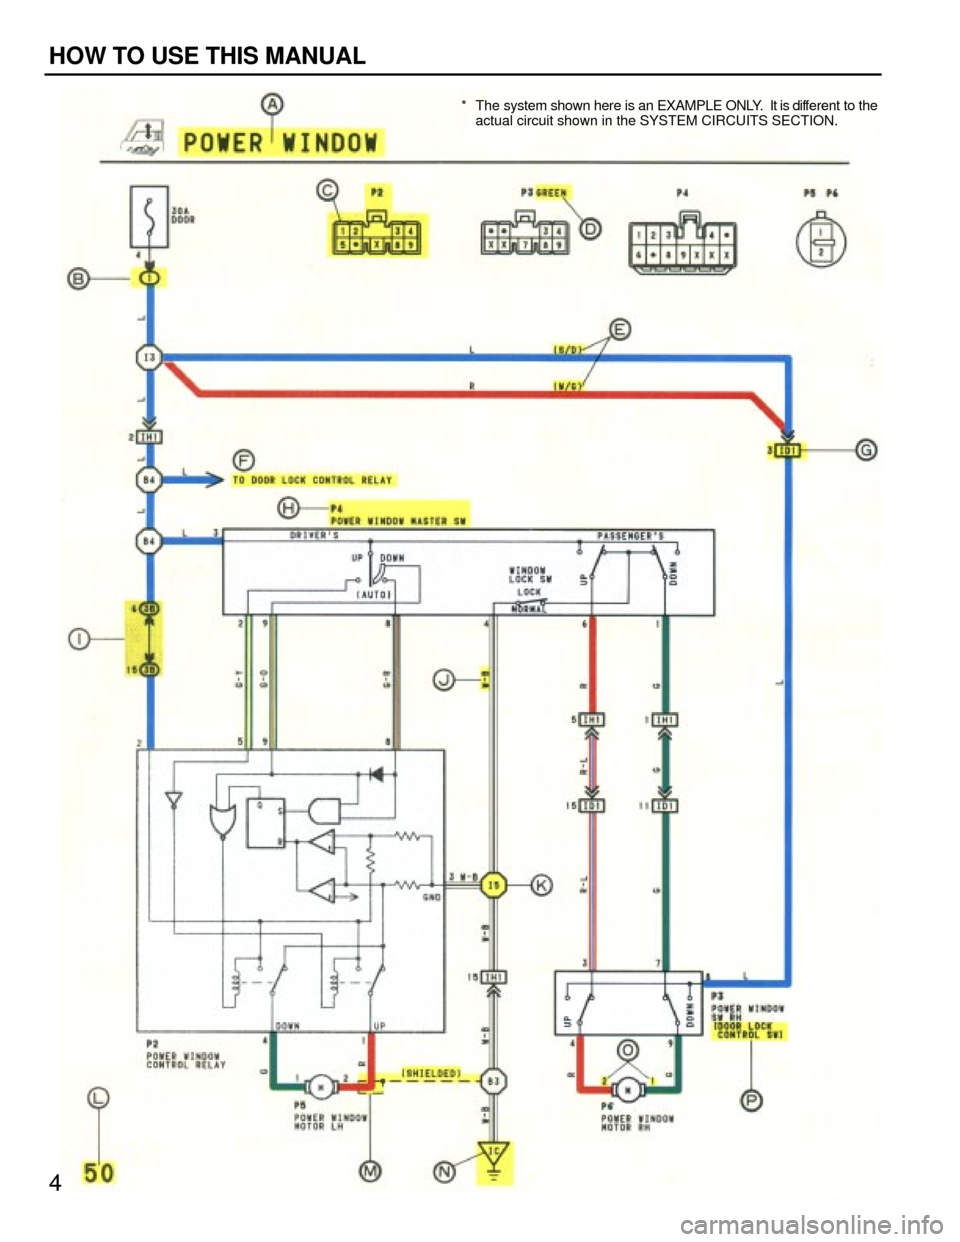 TOYOTA CAMRY 1994 XV10 / 4.G Wiring Diagrams Workshop Manual * The system shown here is an EXAMPLE ONLY.  It is different to the actual circuit shown in the SYSTEM CIRCUITS SECTION. 4 HOW TO USE THIS MANUAL